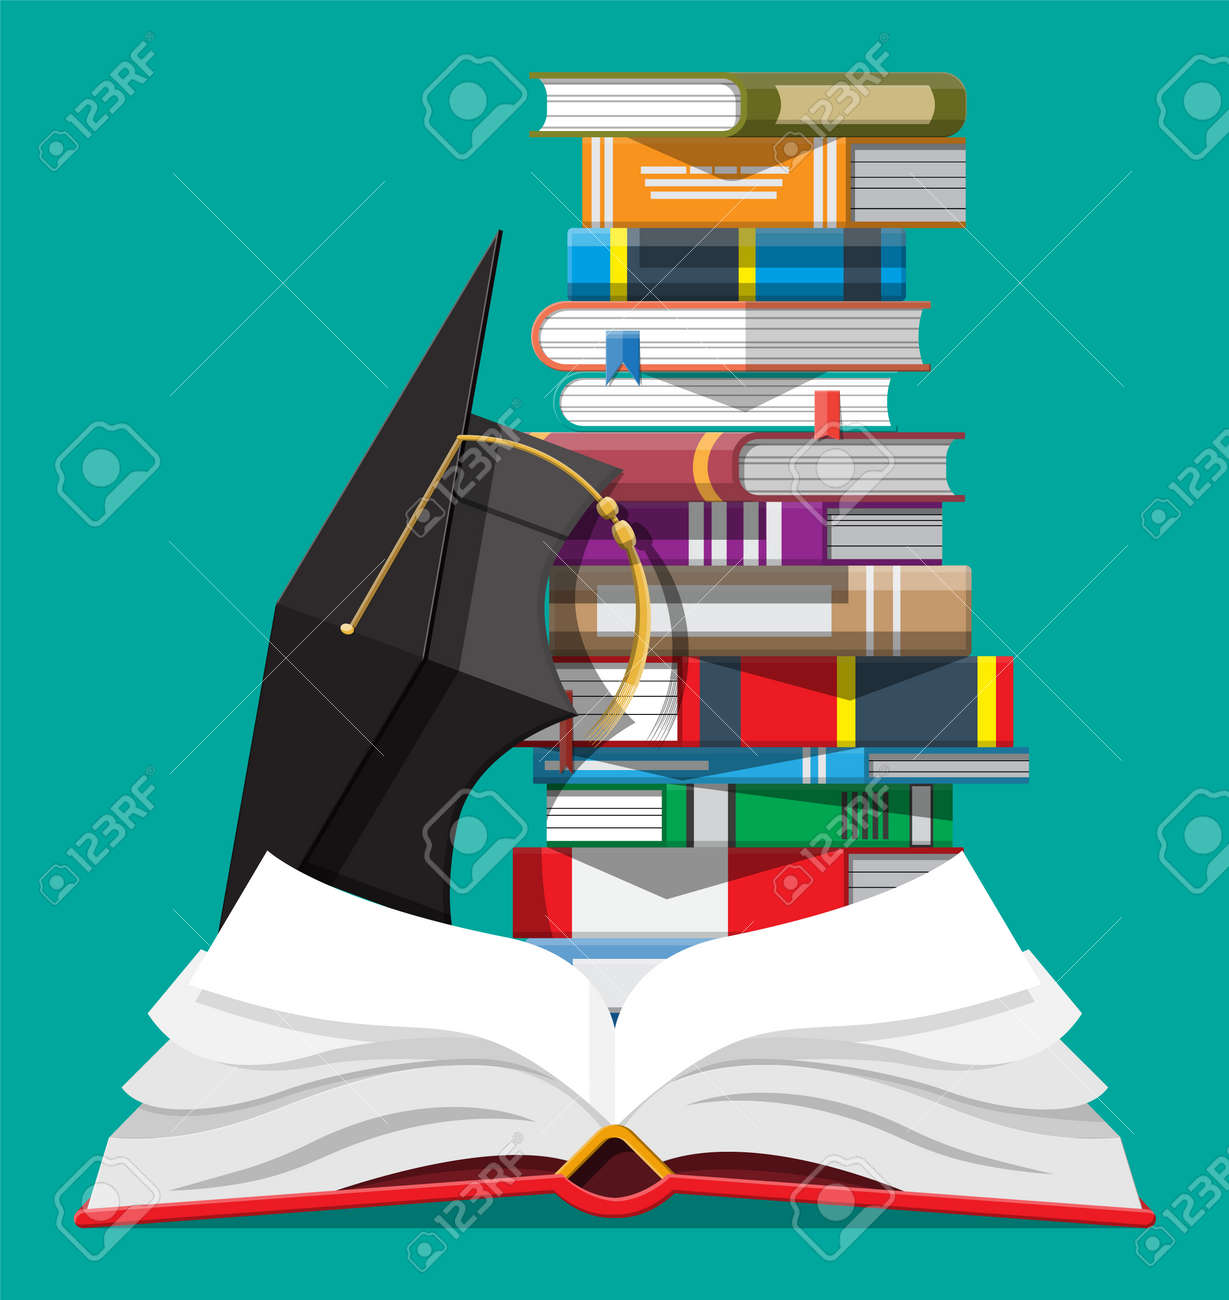 Graduation cap and stack of books. - 137652462